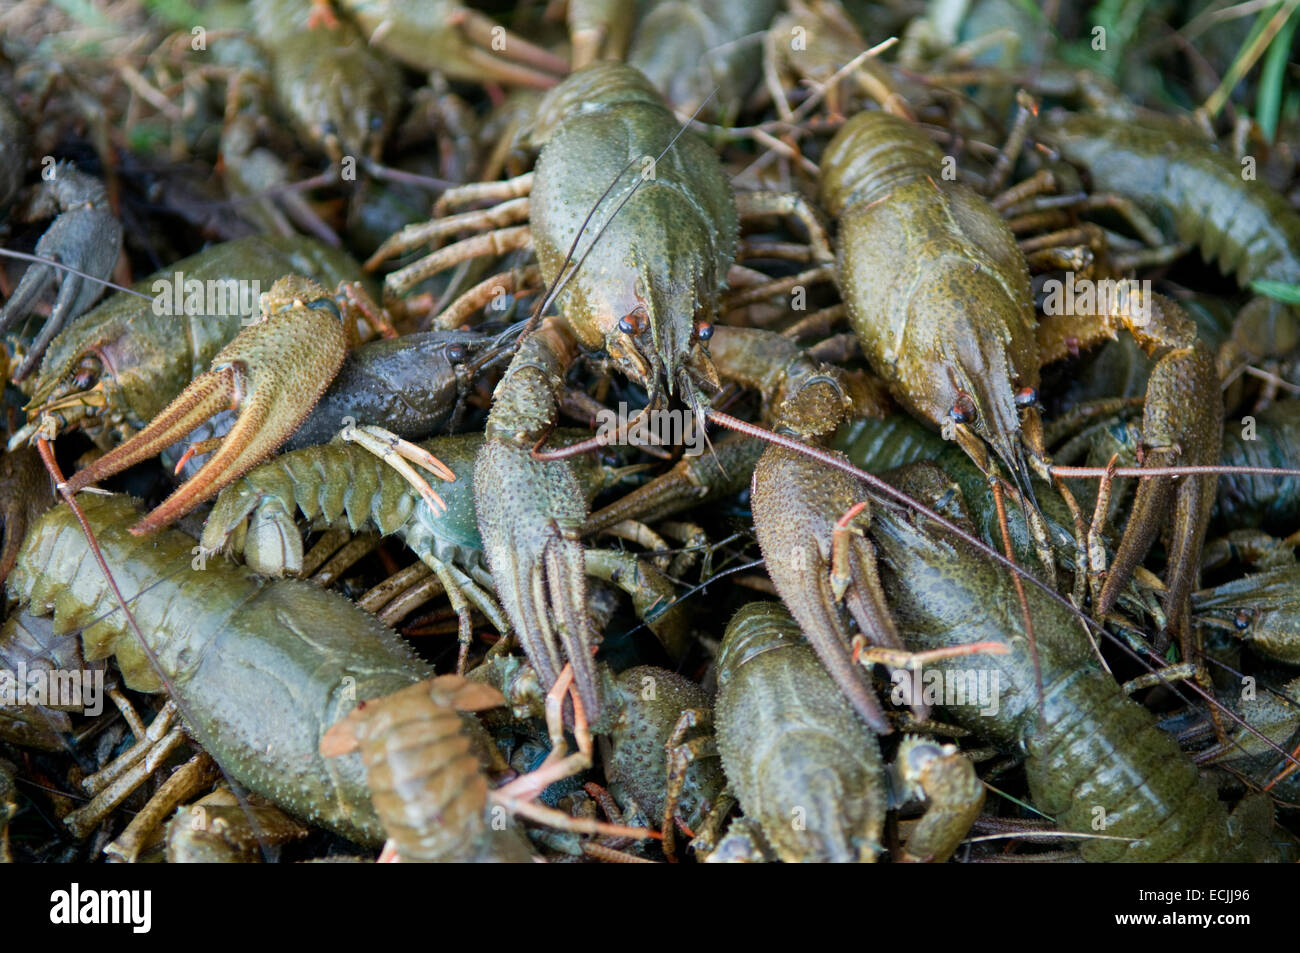 There are many crawfishes on the photo. Crawfishes are green, because the are vitality. - Stock Image